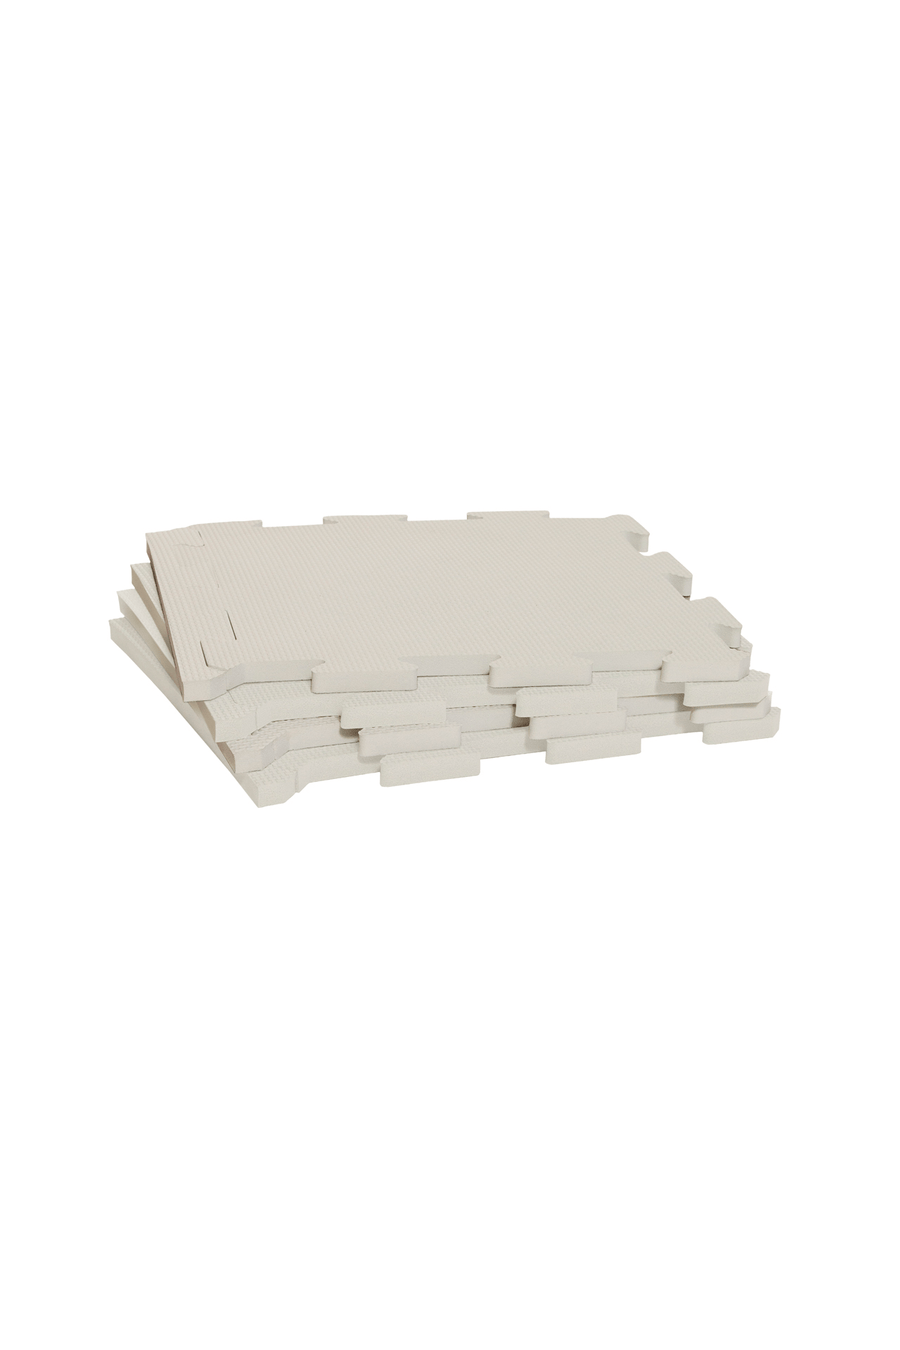 The Modern Nursery Puzzle Playmat Extension - Ivory (4pcs)